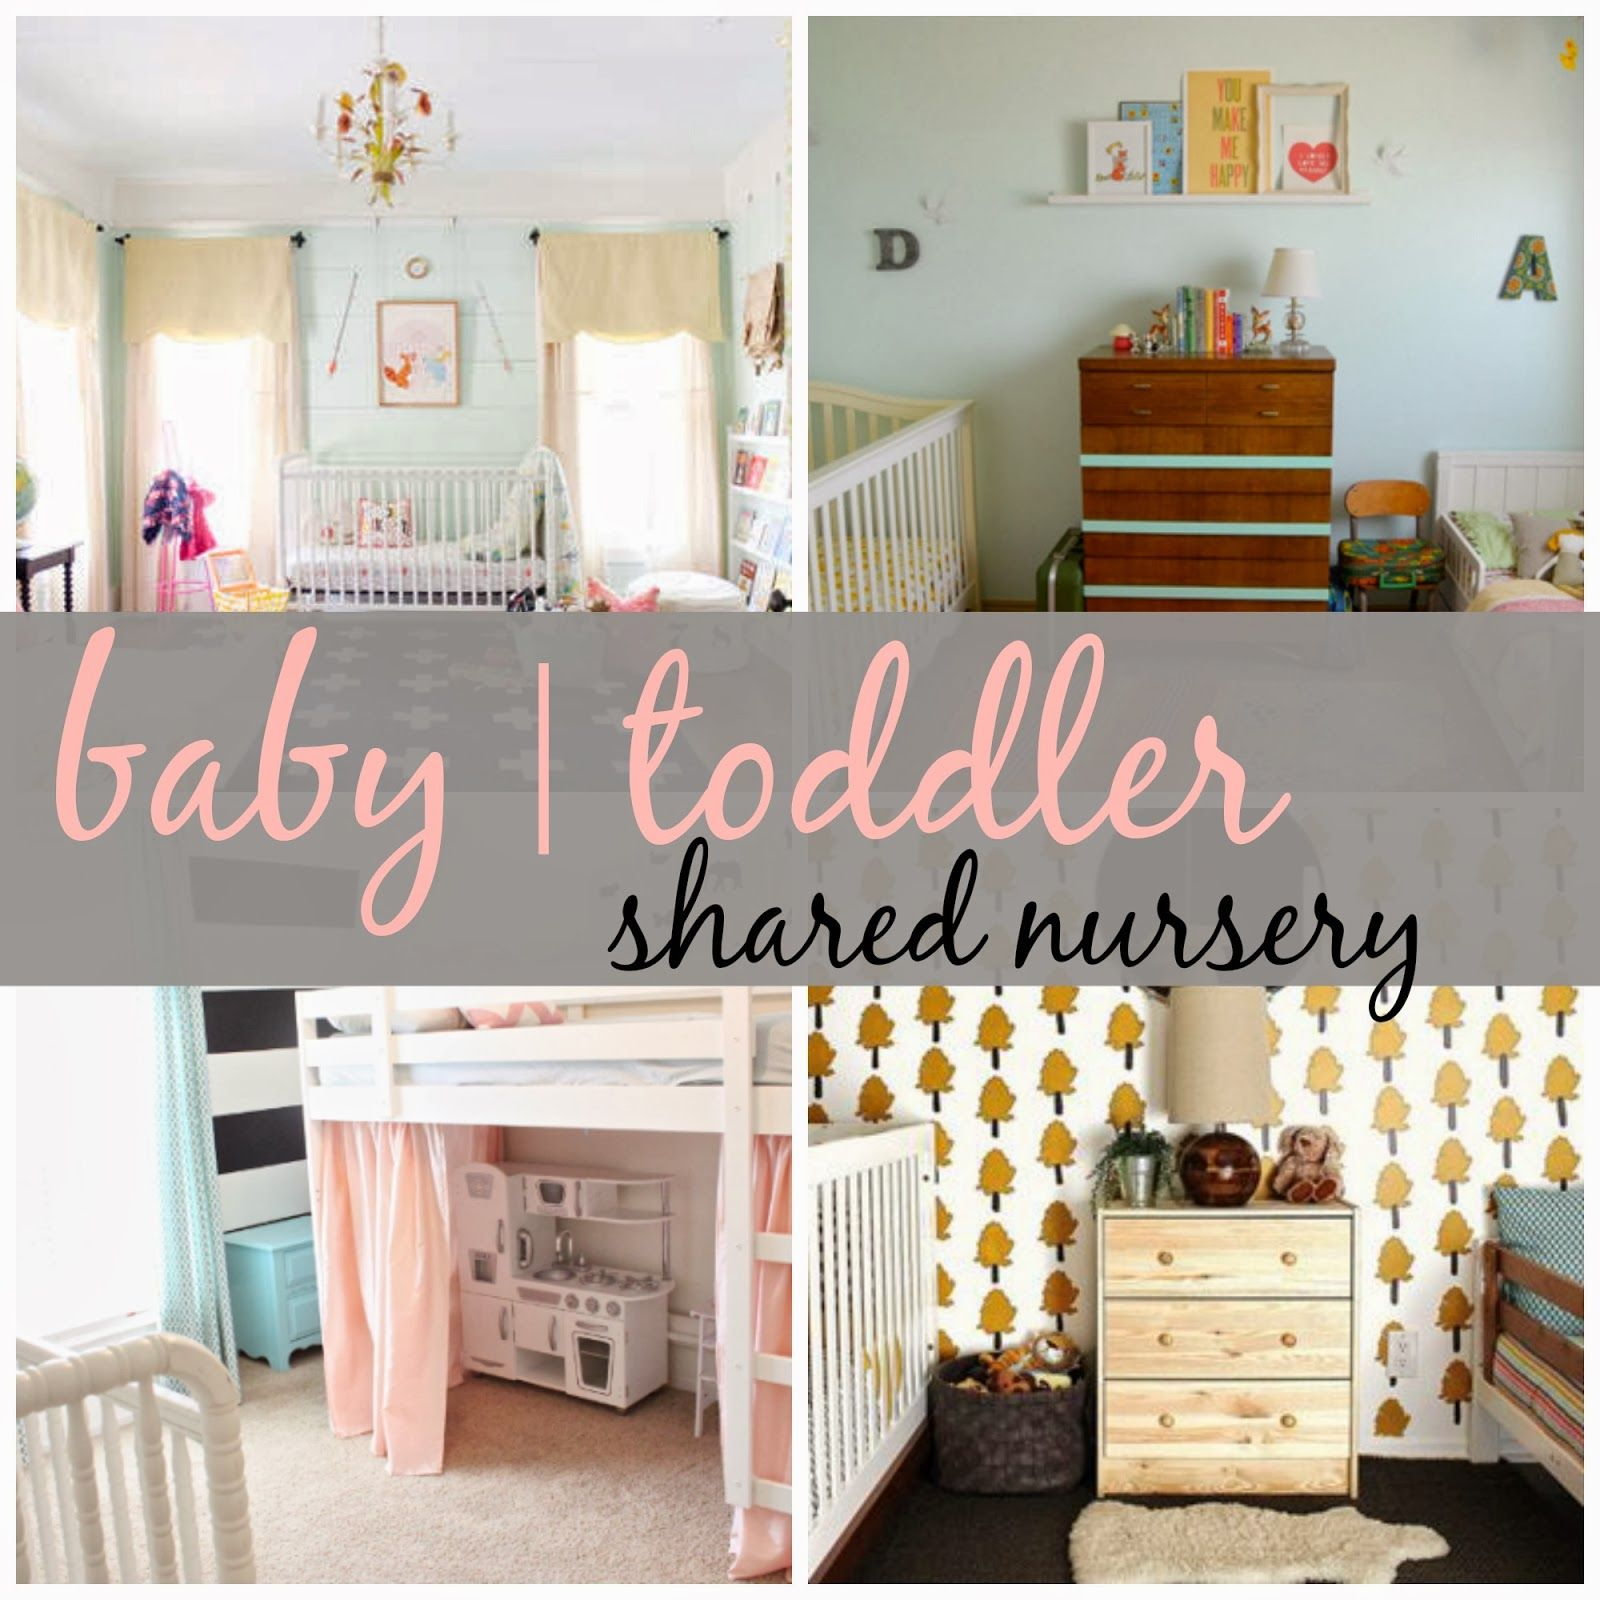 Bedroom design for boy and girl sharing - Joyful Life Shared Nursery Baby Toddler Rooms Baby Toddler Nurseryboy Girl